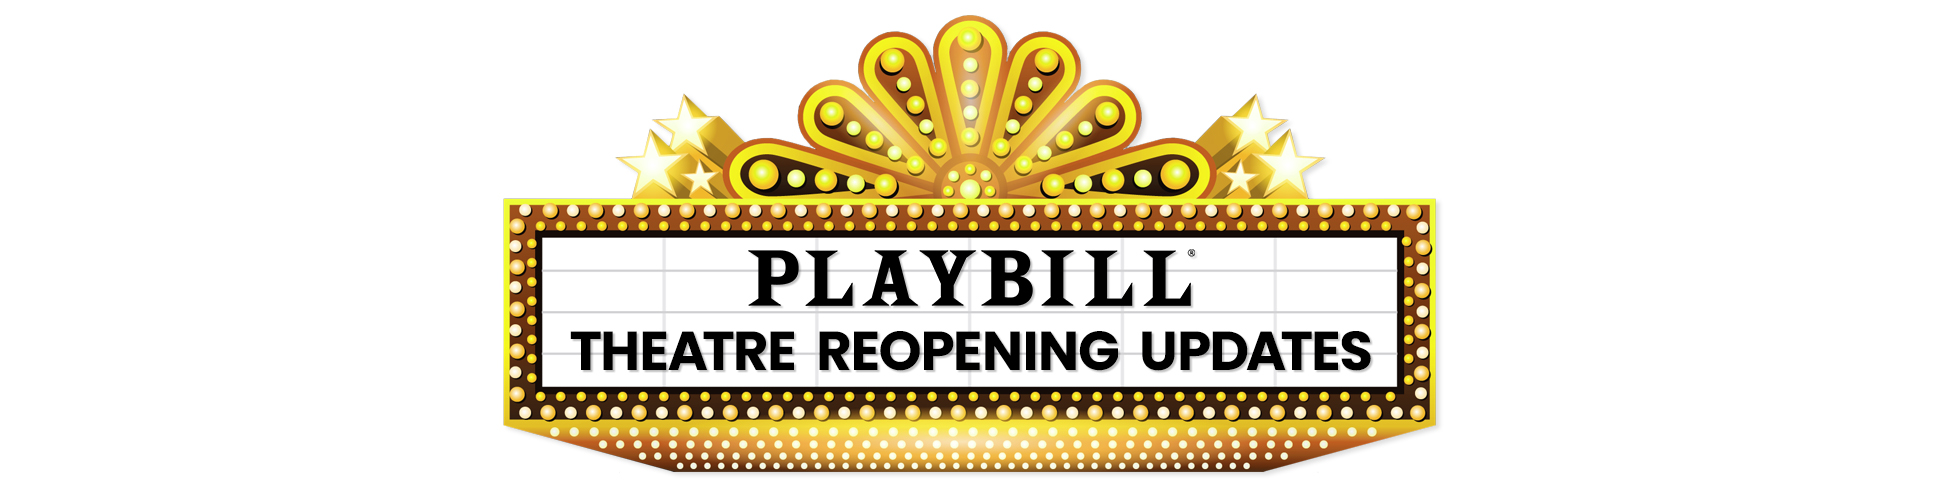 Playbill Theatre Reopening Updates